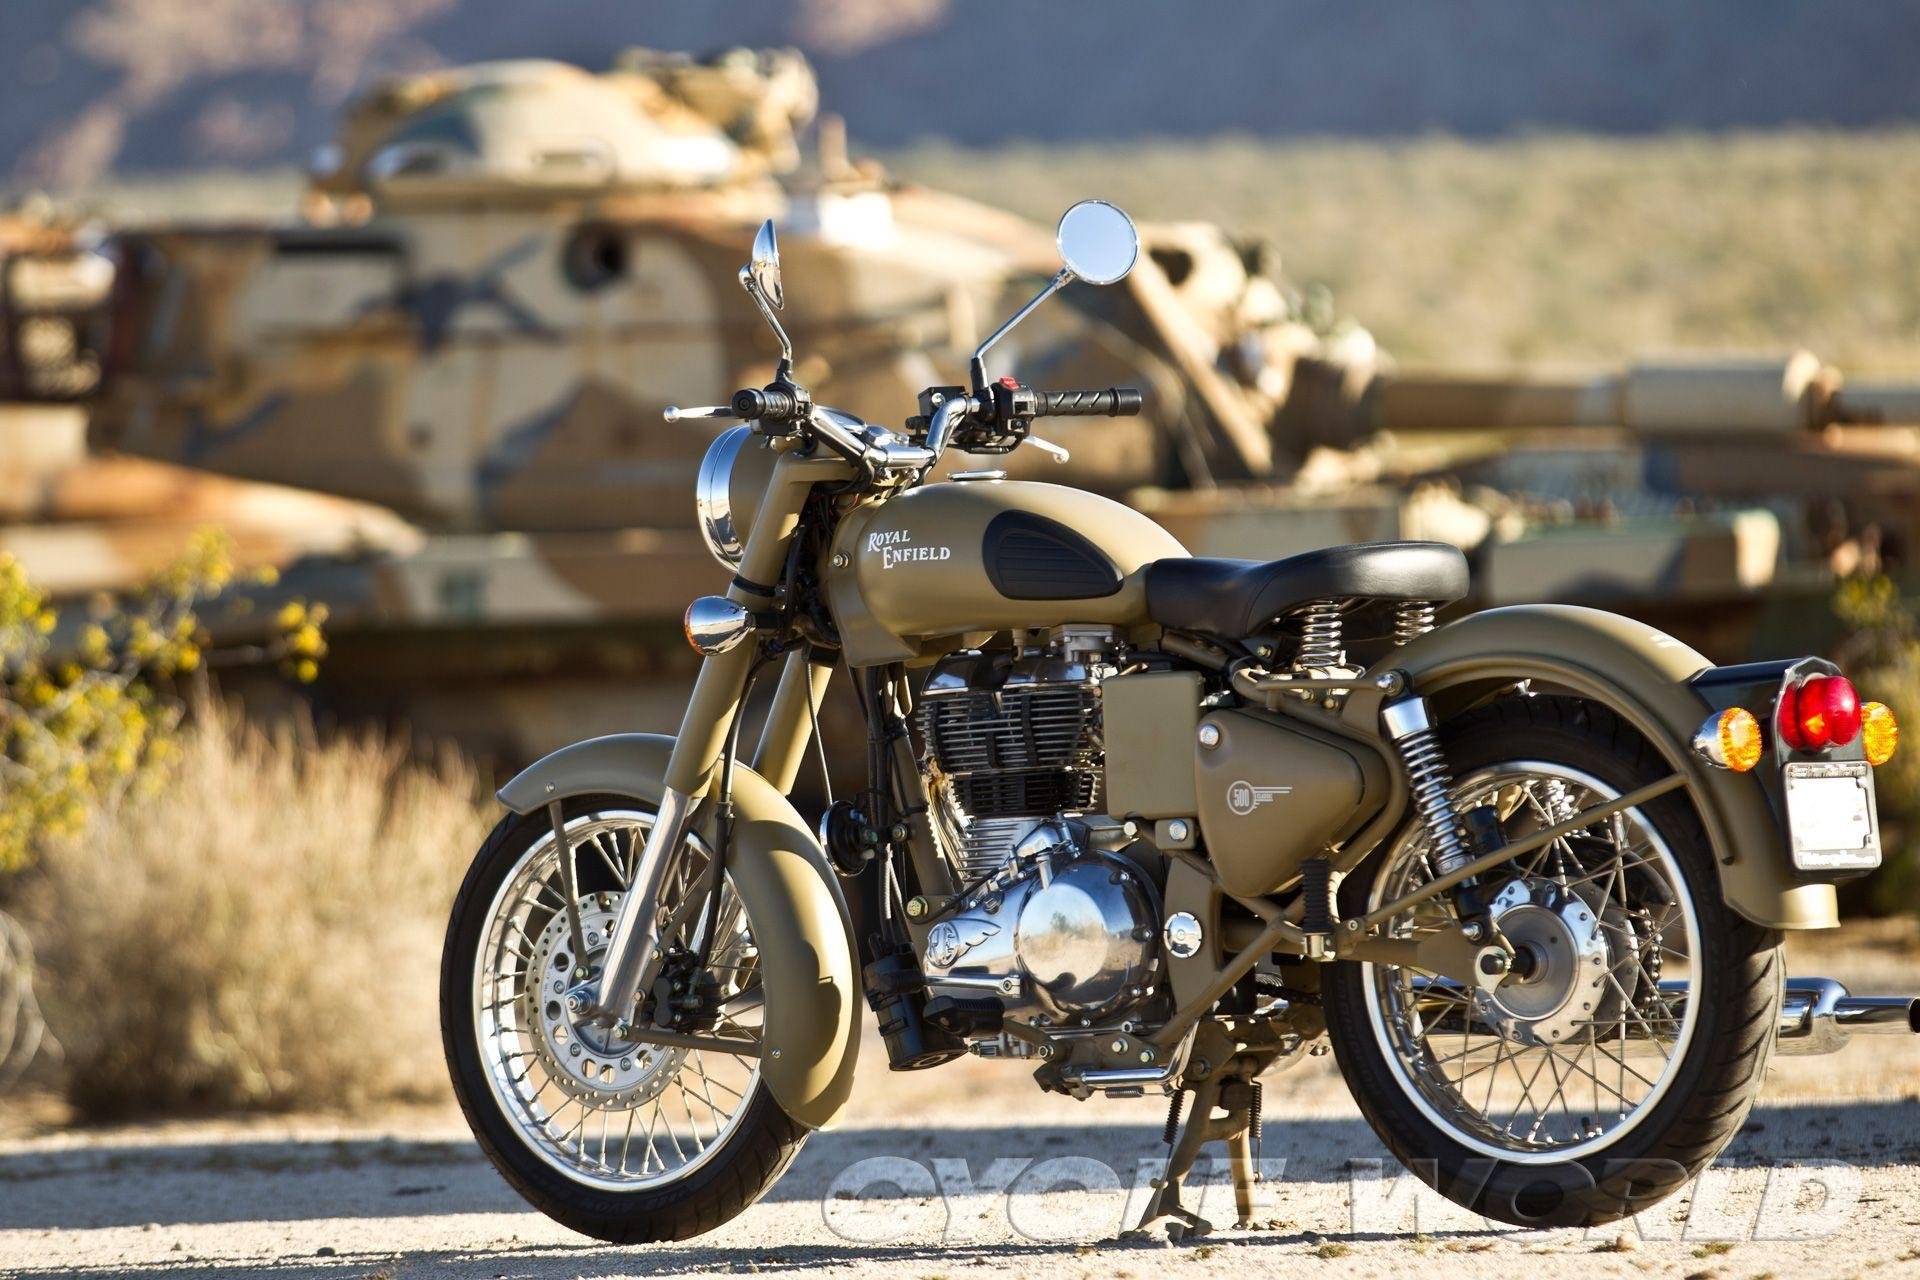 royal enfield classic desert storm wallpapers - wallpaper cave